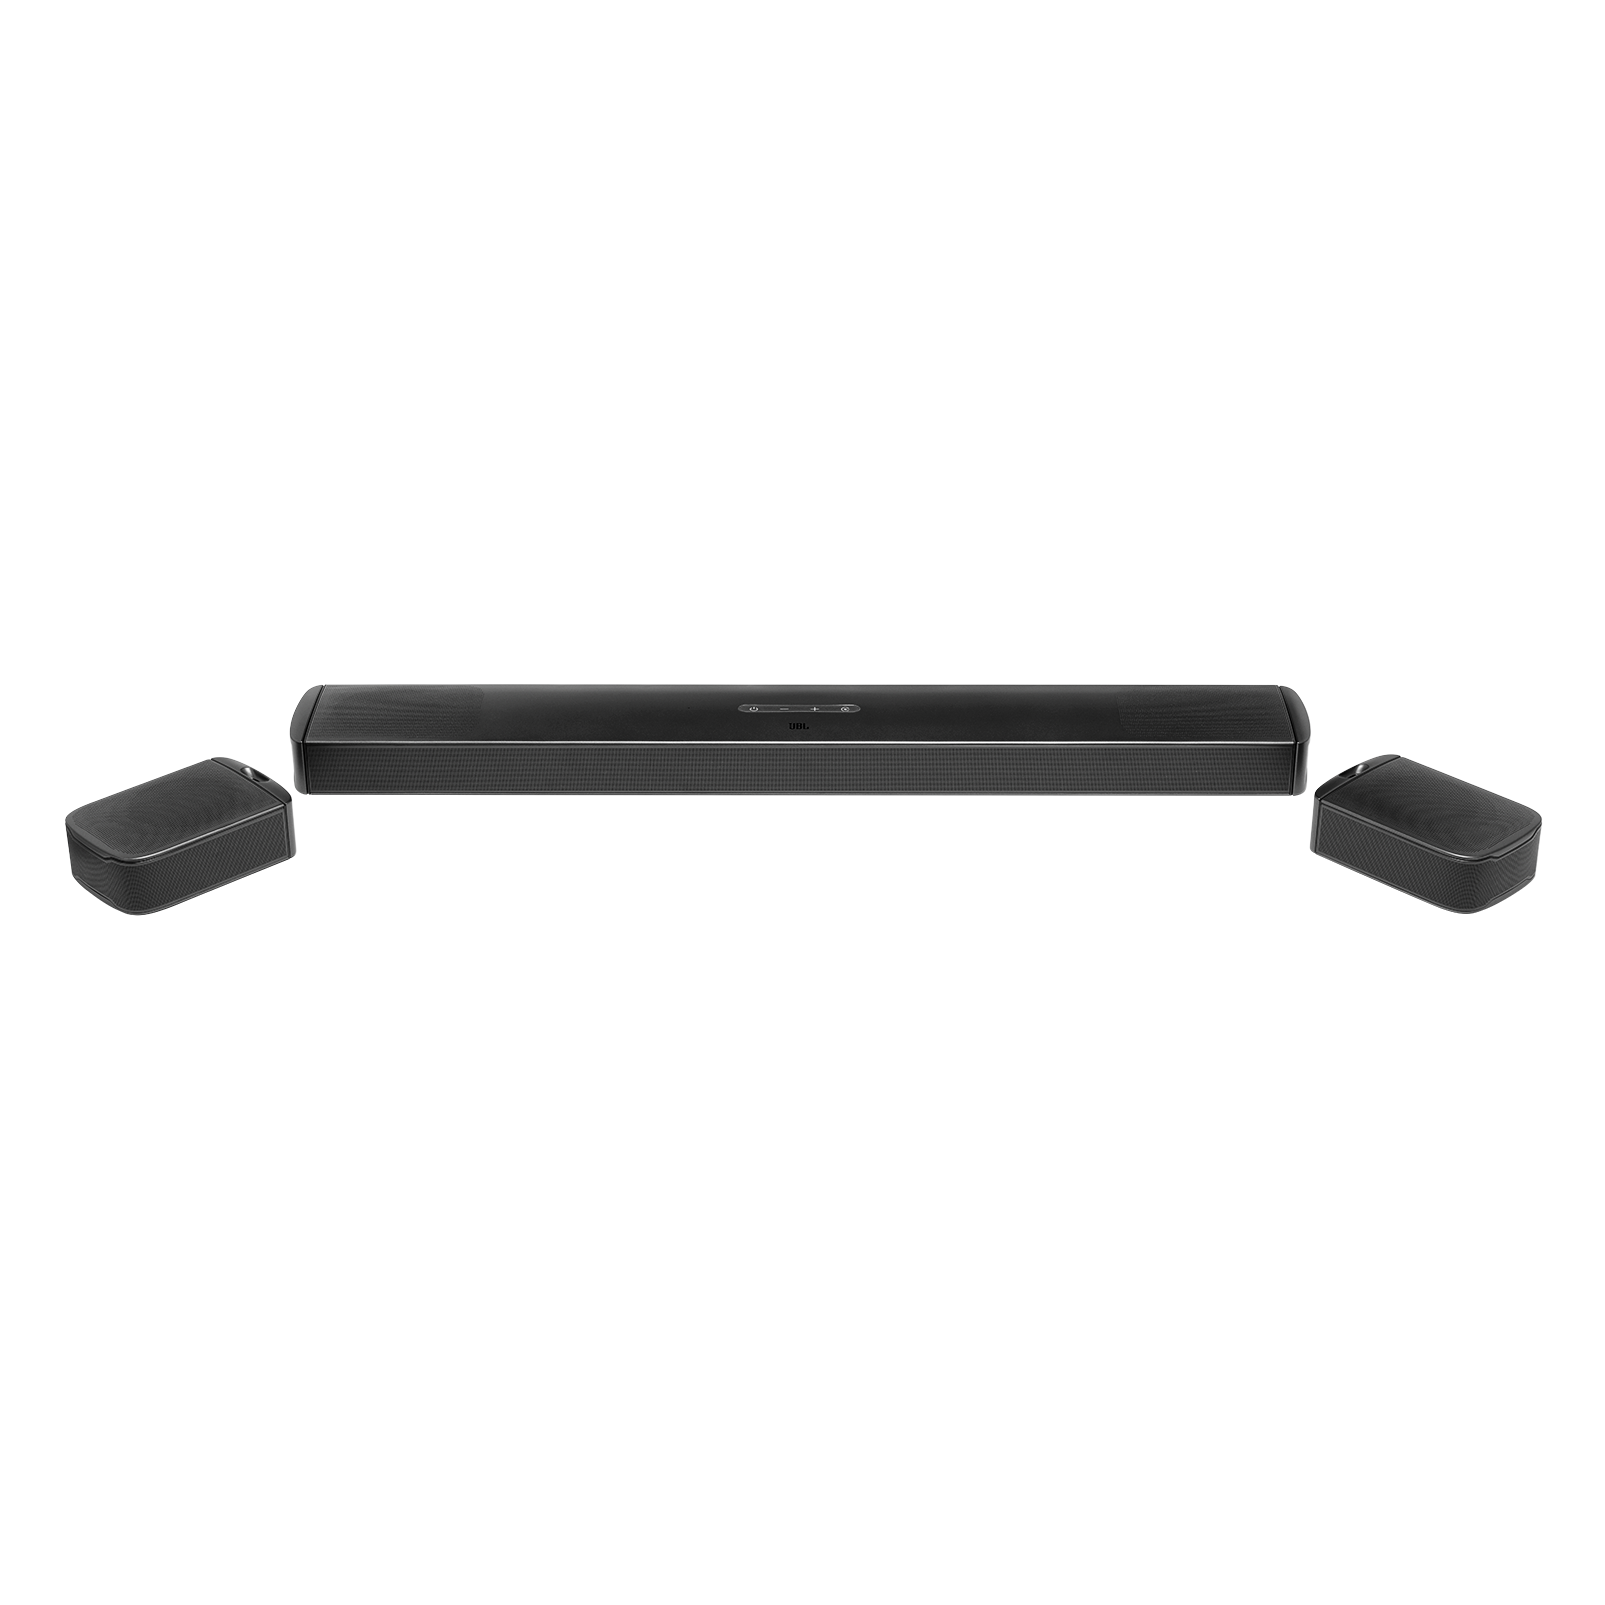 JBL BAR 9.1 True Wireless Surround with Dolby Atmos® - Black - Detailshot 1